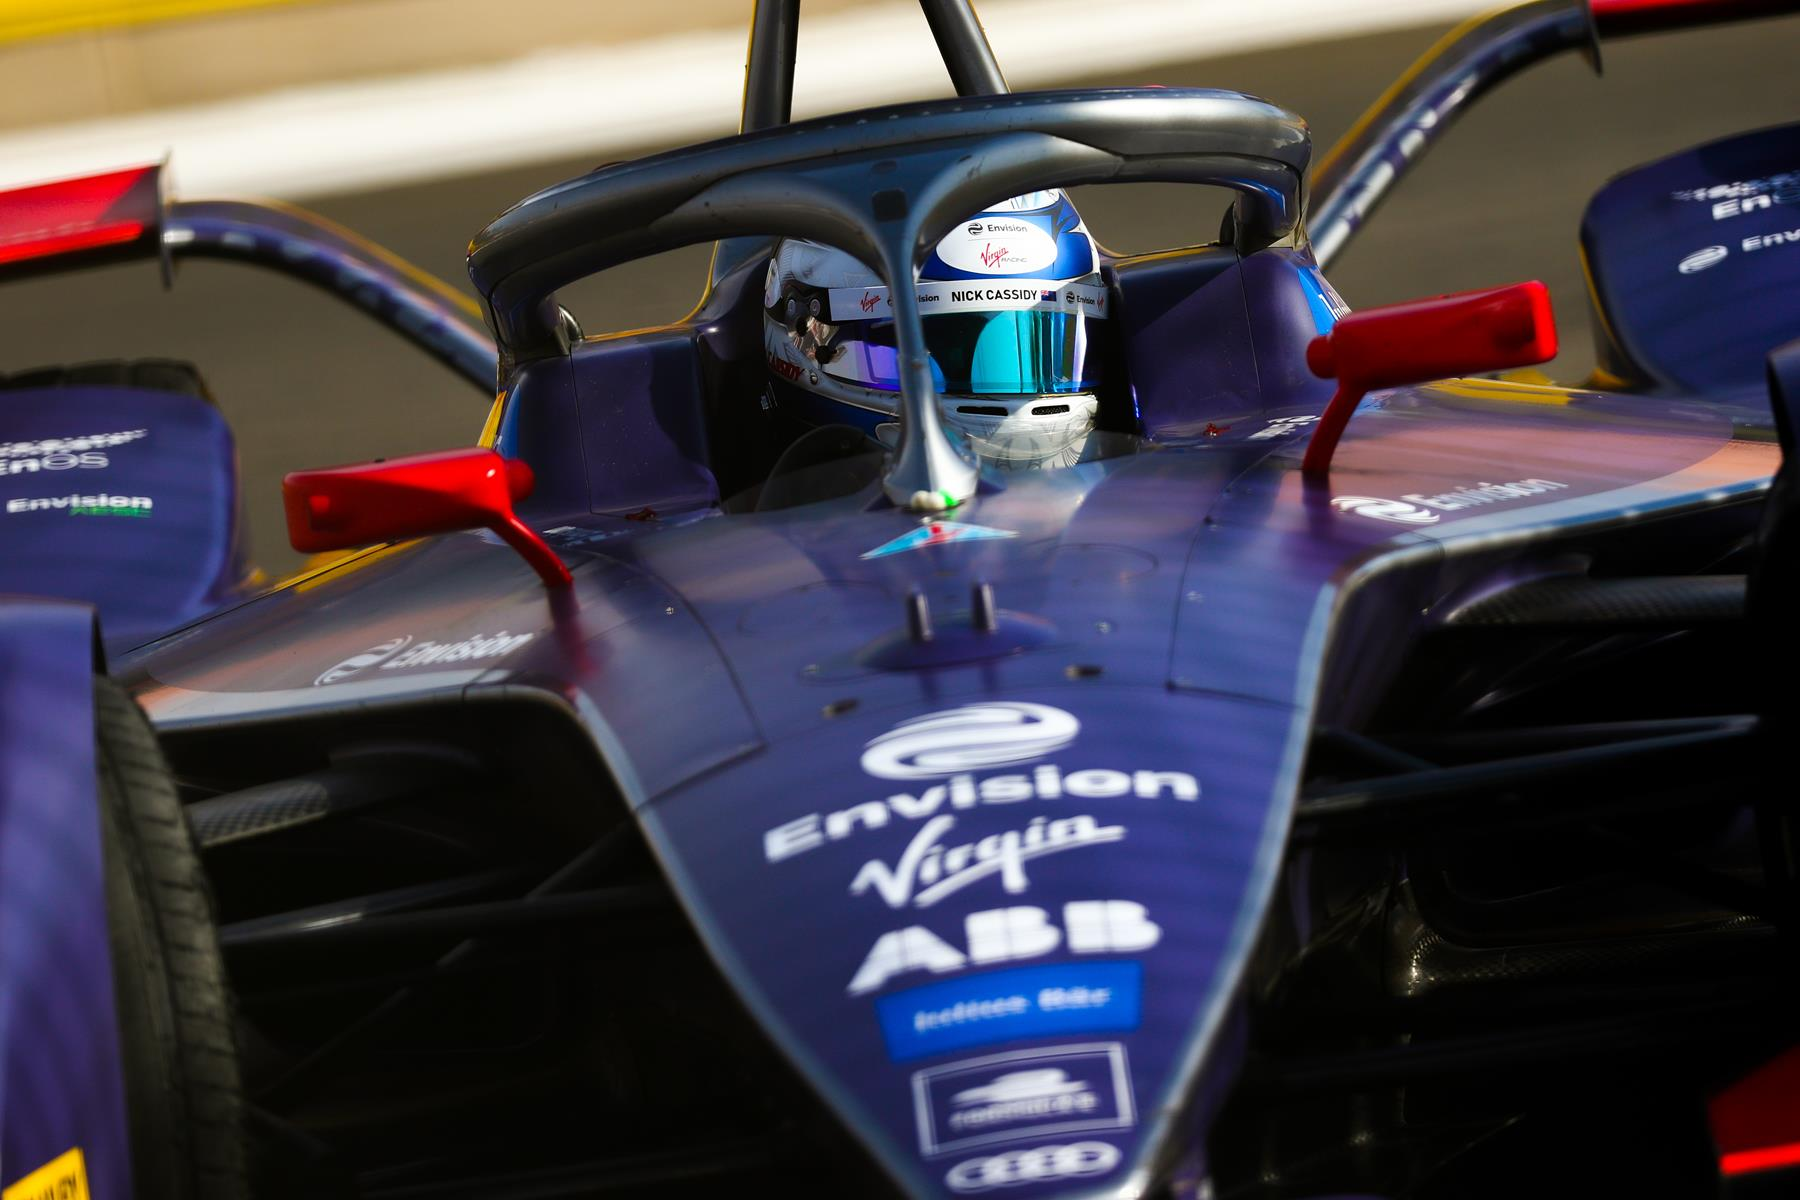 Nick-Cassidy-Virgin-Formula-E-Rookie-Test-2020-Marrakesch